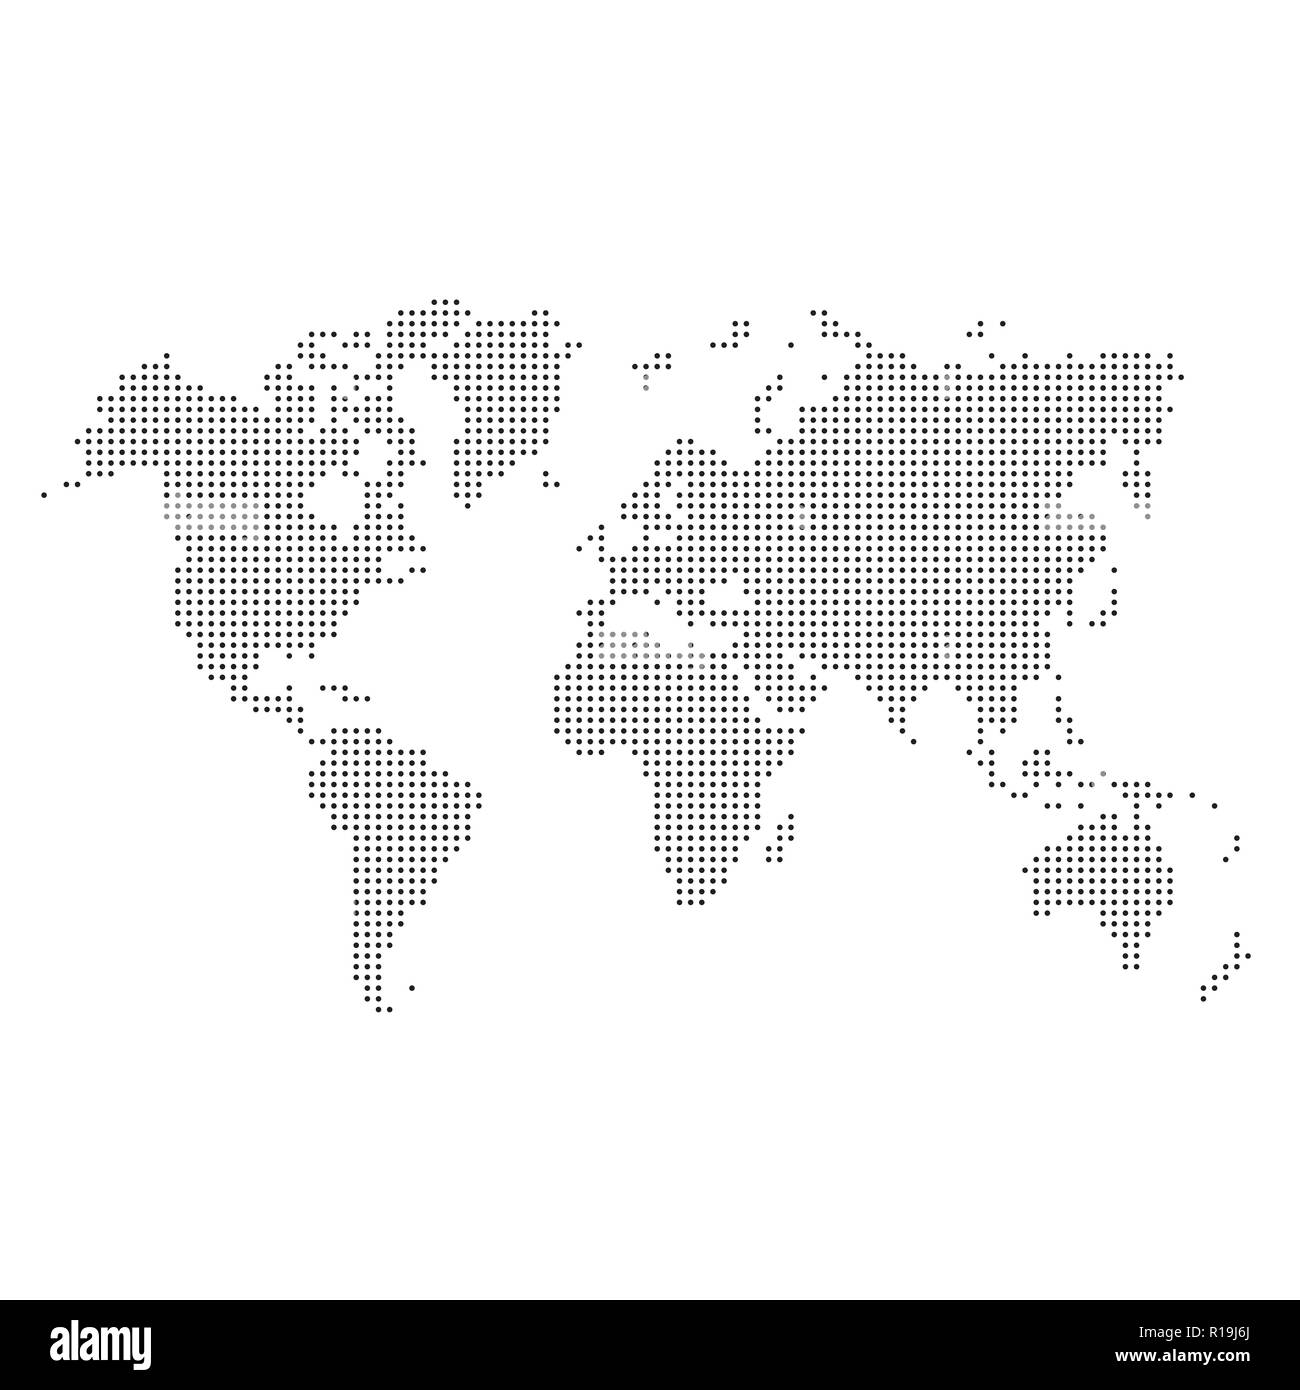 Black dotted silhouette of world map isolated on white background - Stock Image